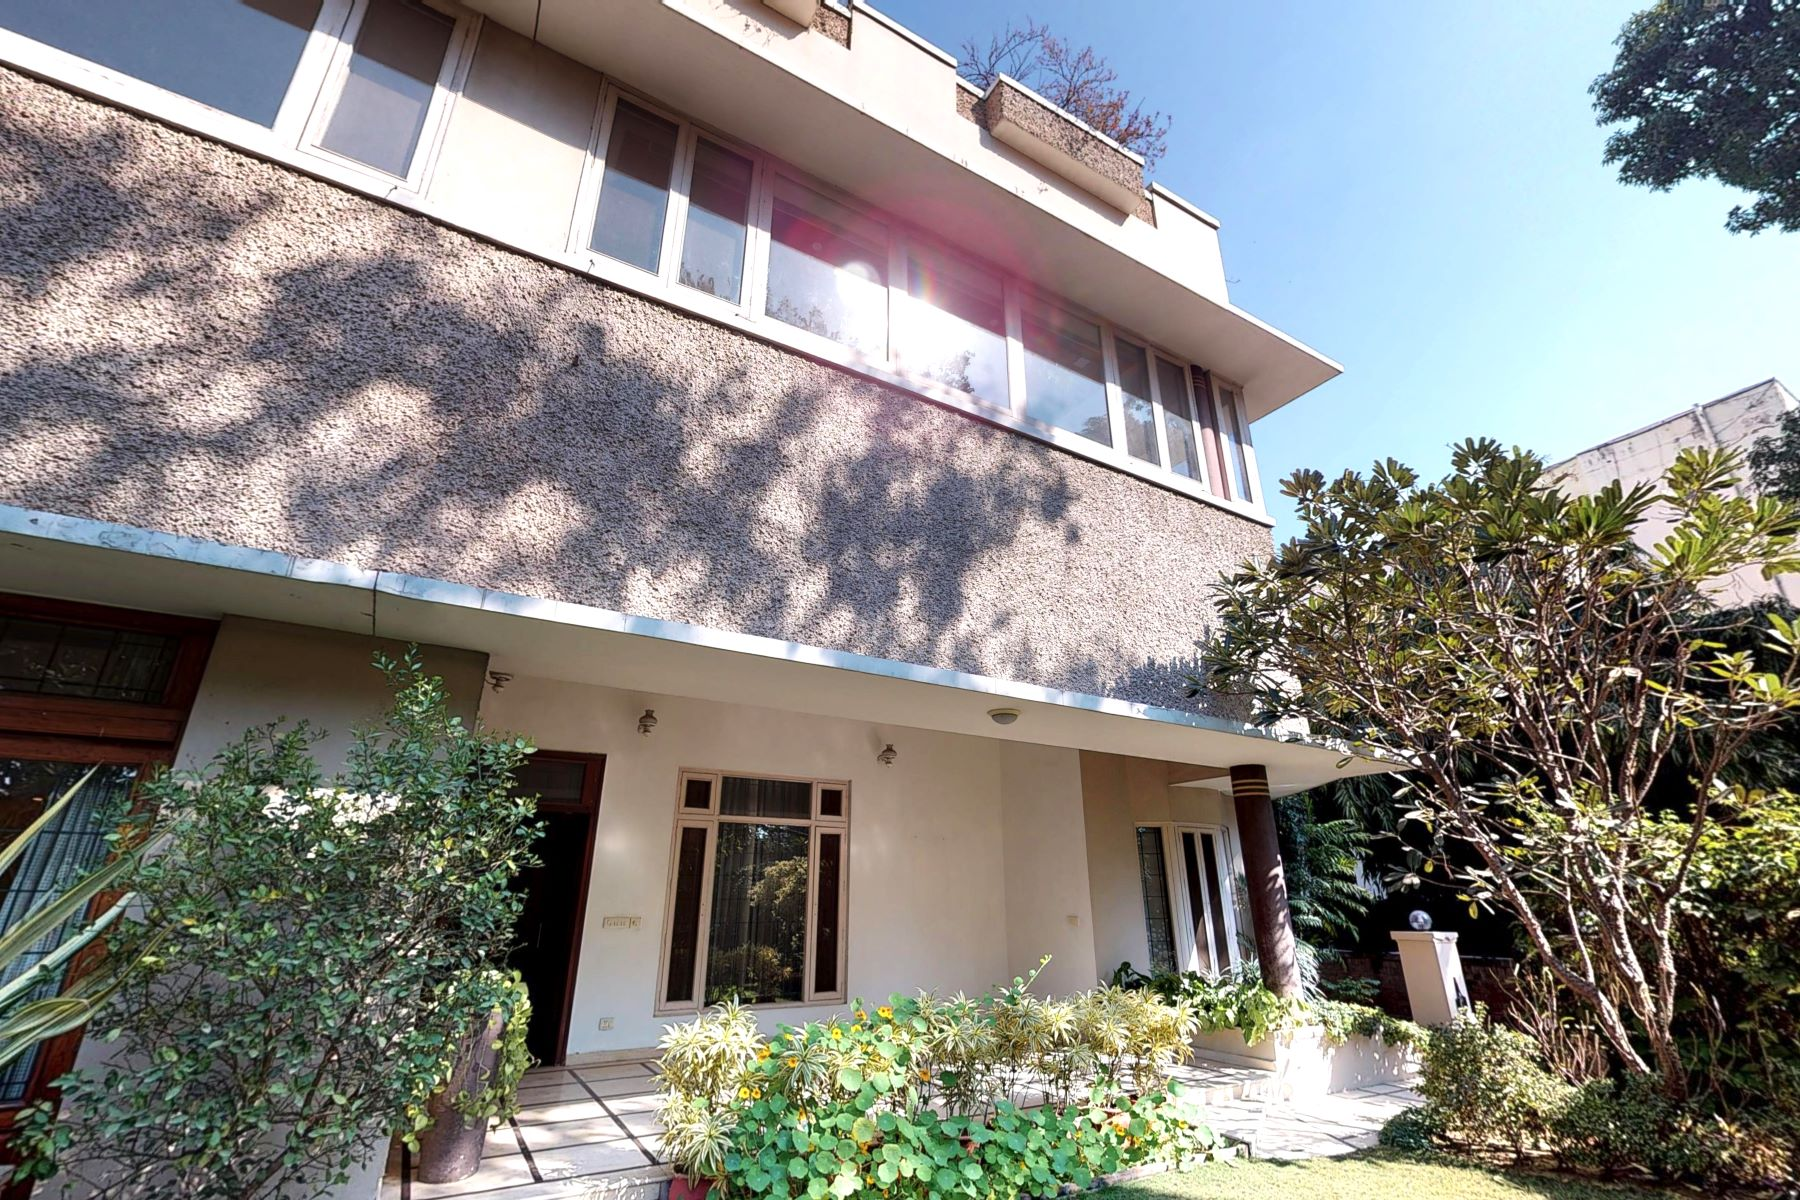 Single Family Homes for Sale at Bungalow in Sunder Nagar Lutyens Bungalow Zone New Delhi, Delhi 110003 India